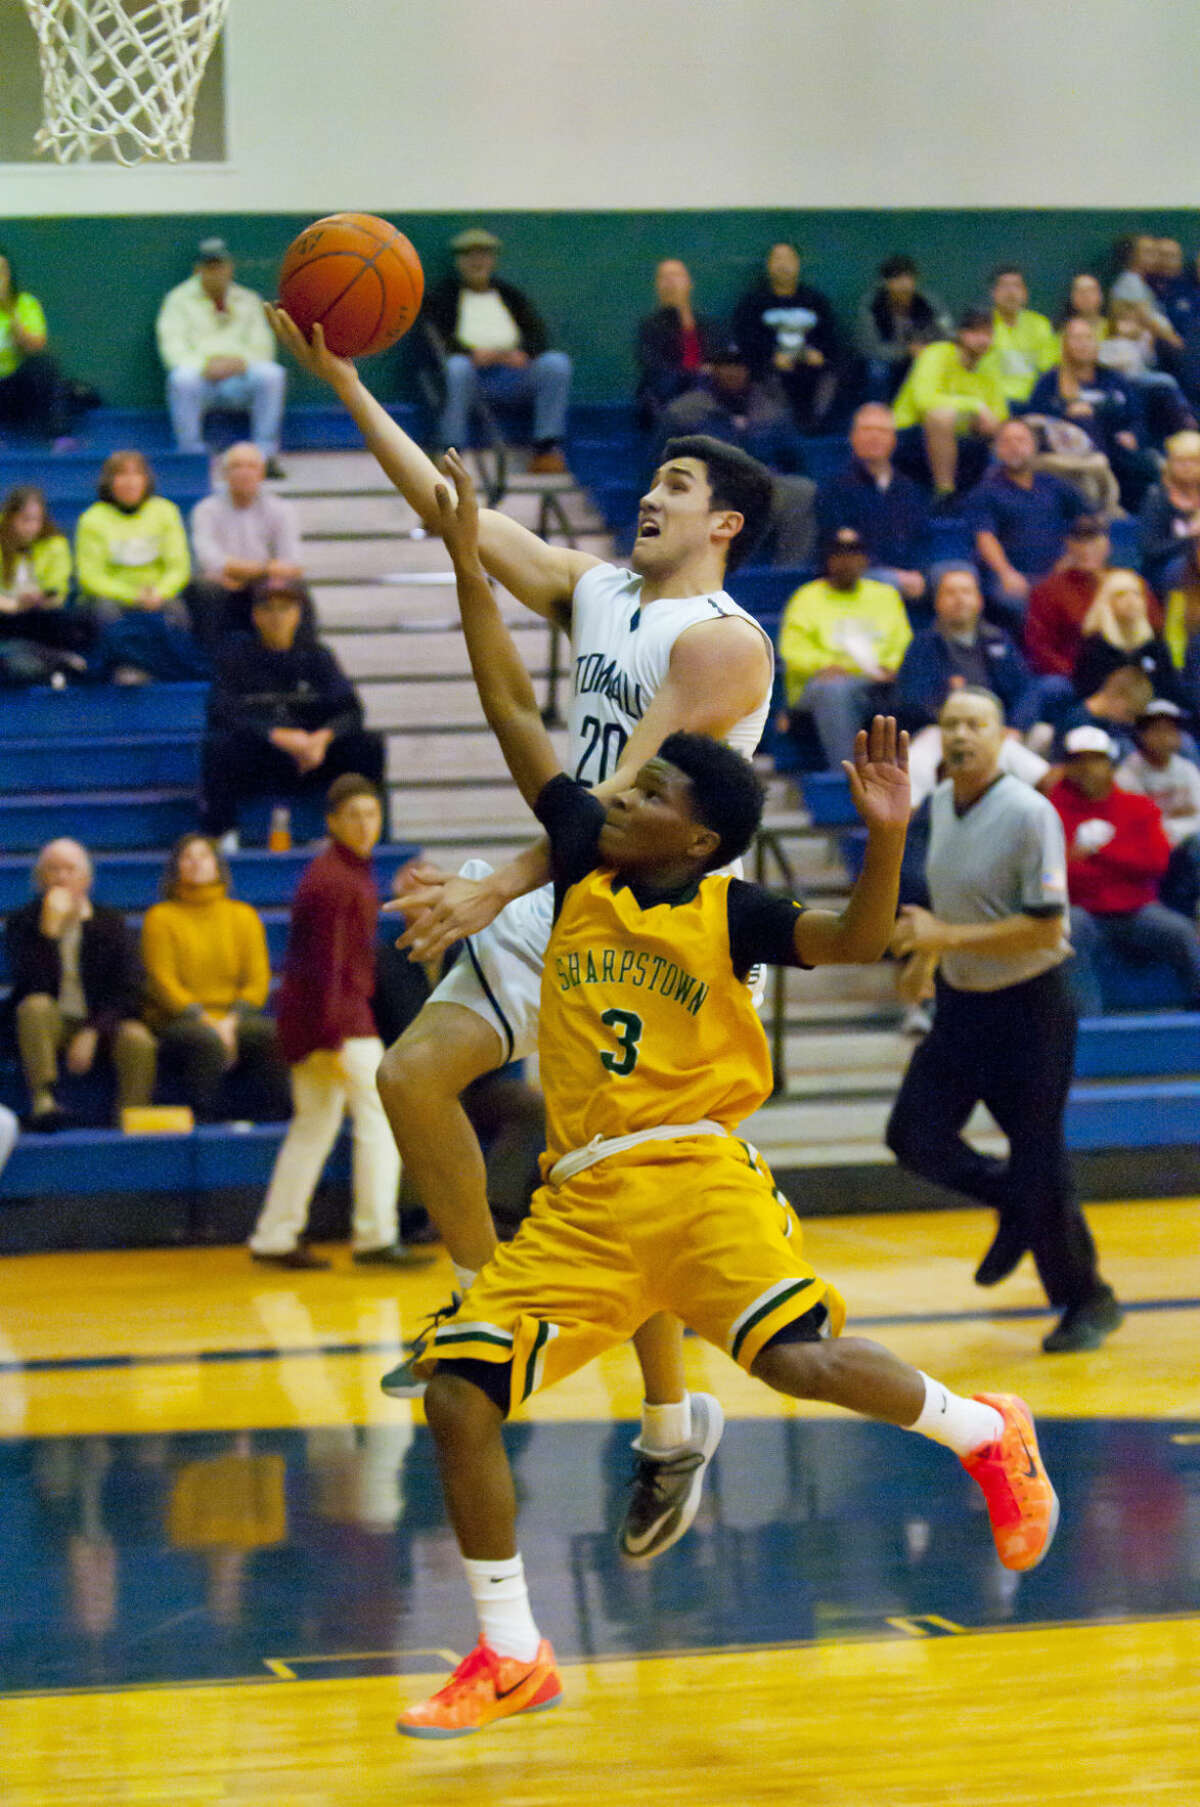 Matt Avila (No.20) goes high for a layup against Sharpstown's William Watkins (No.3) helping Tomball Memorial to their first ever playoff victory.